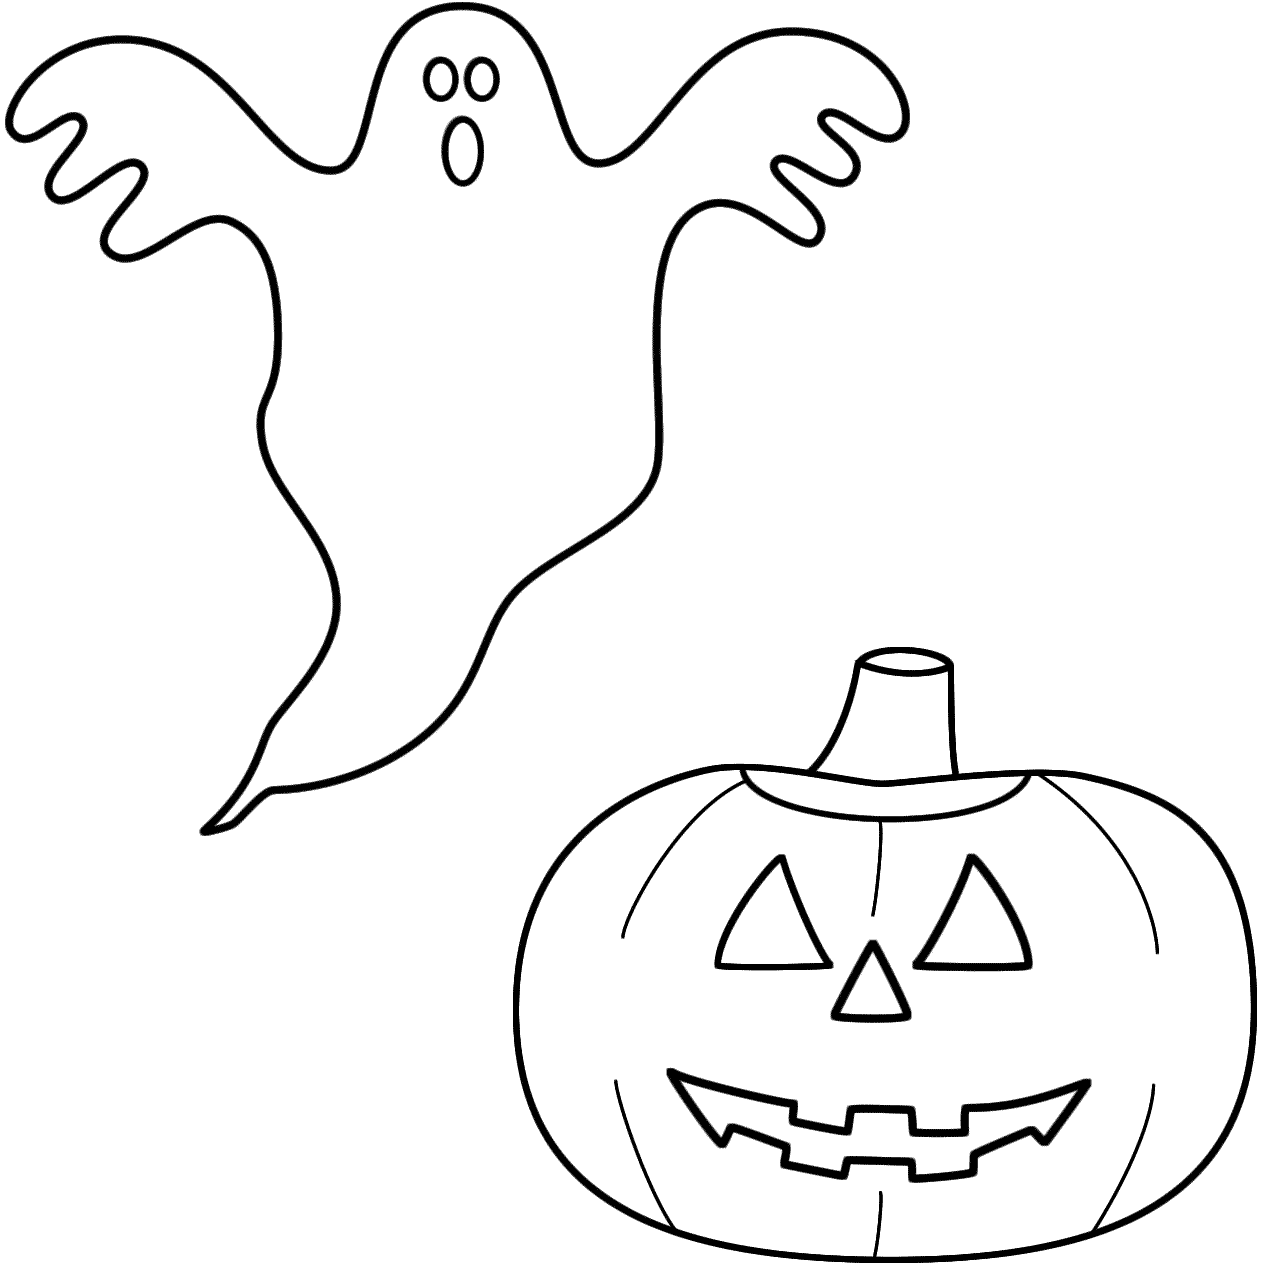 ghost-coloring-page-0026-q1